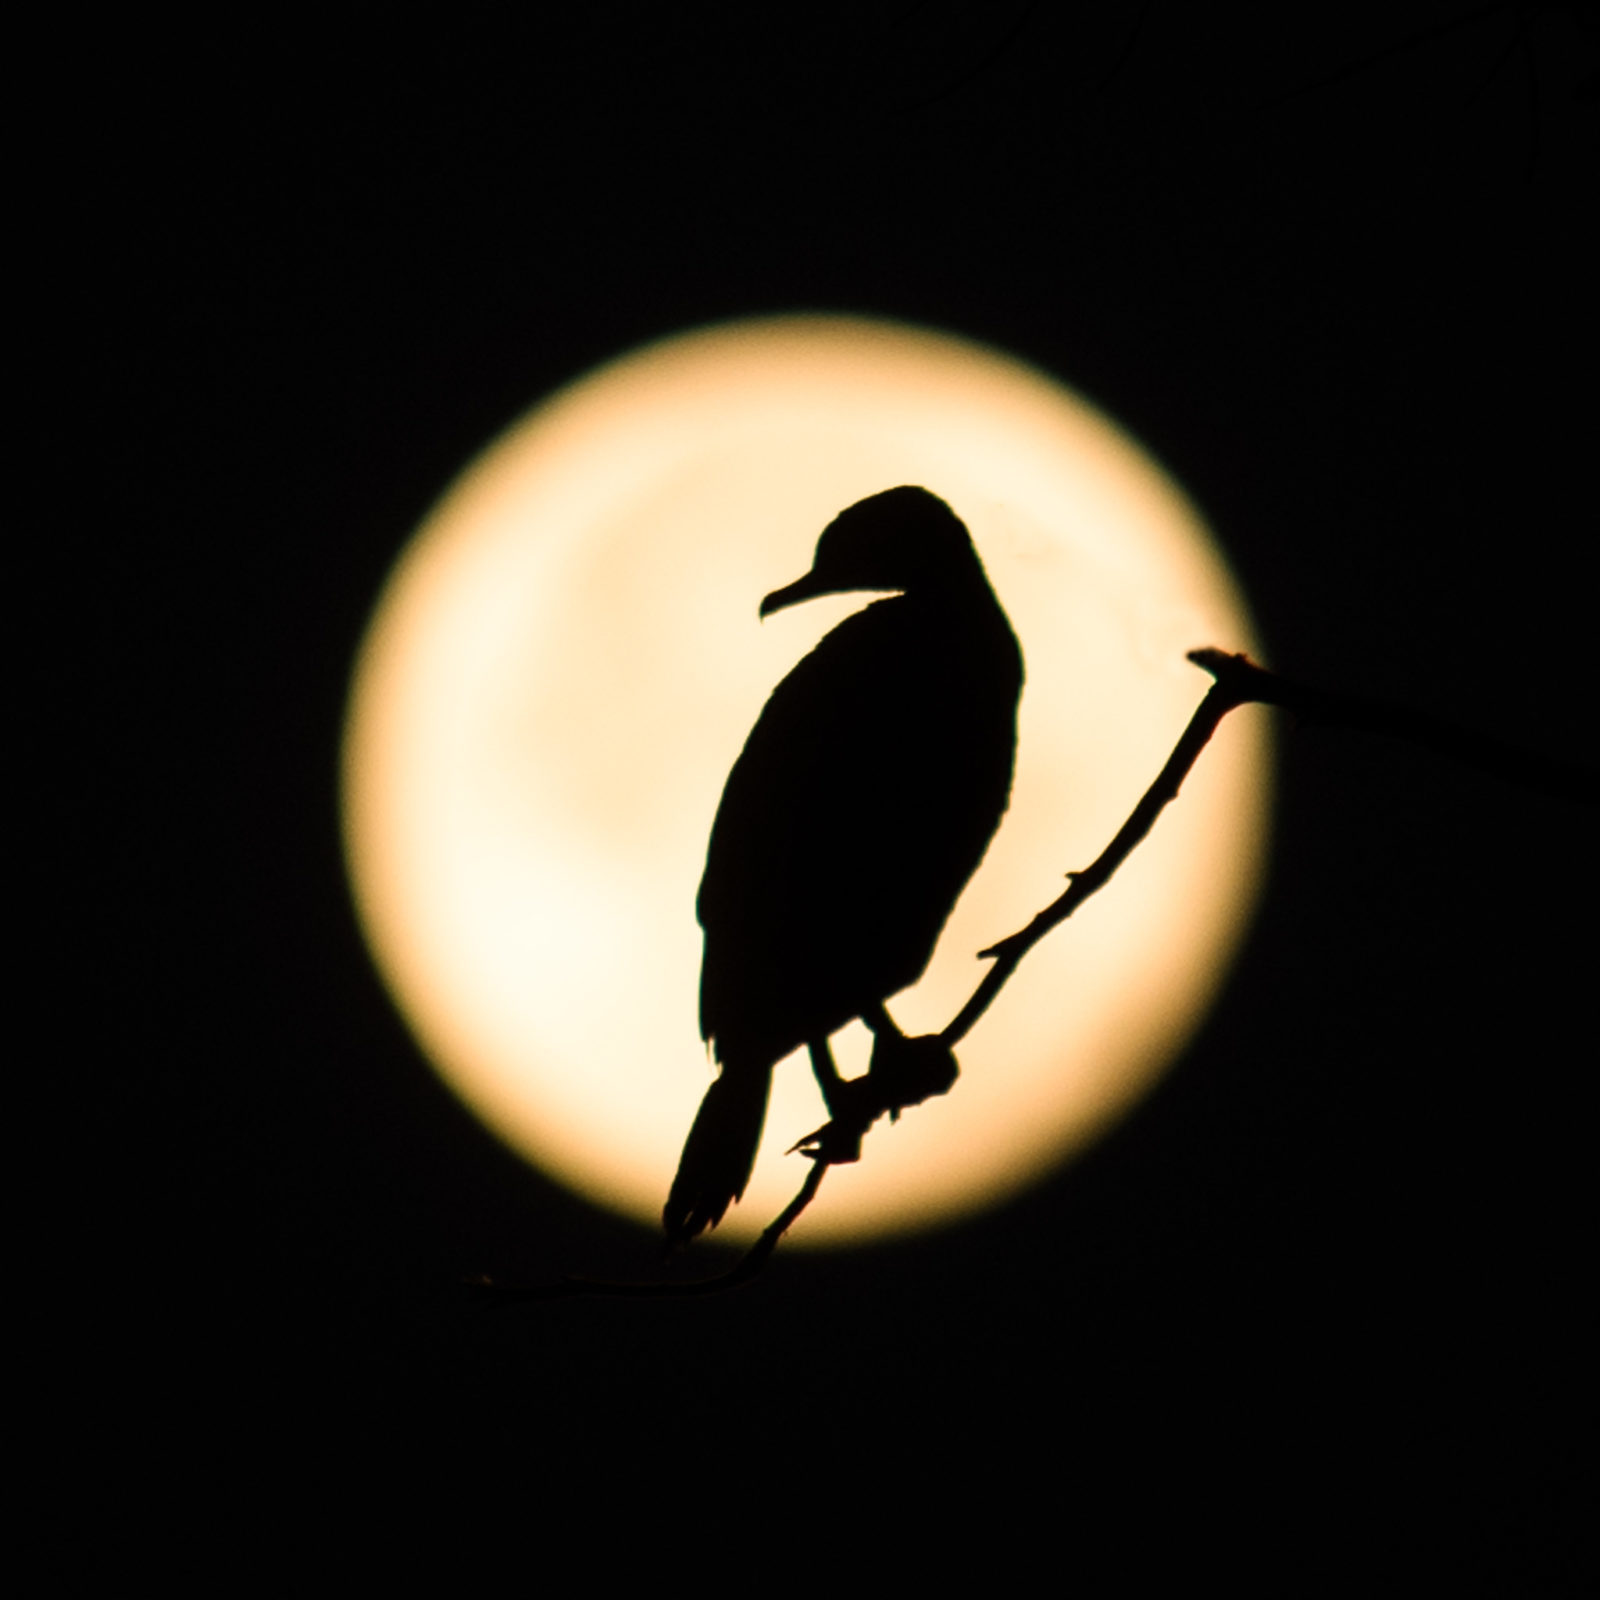 Full moon cormorant